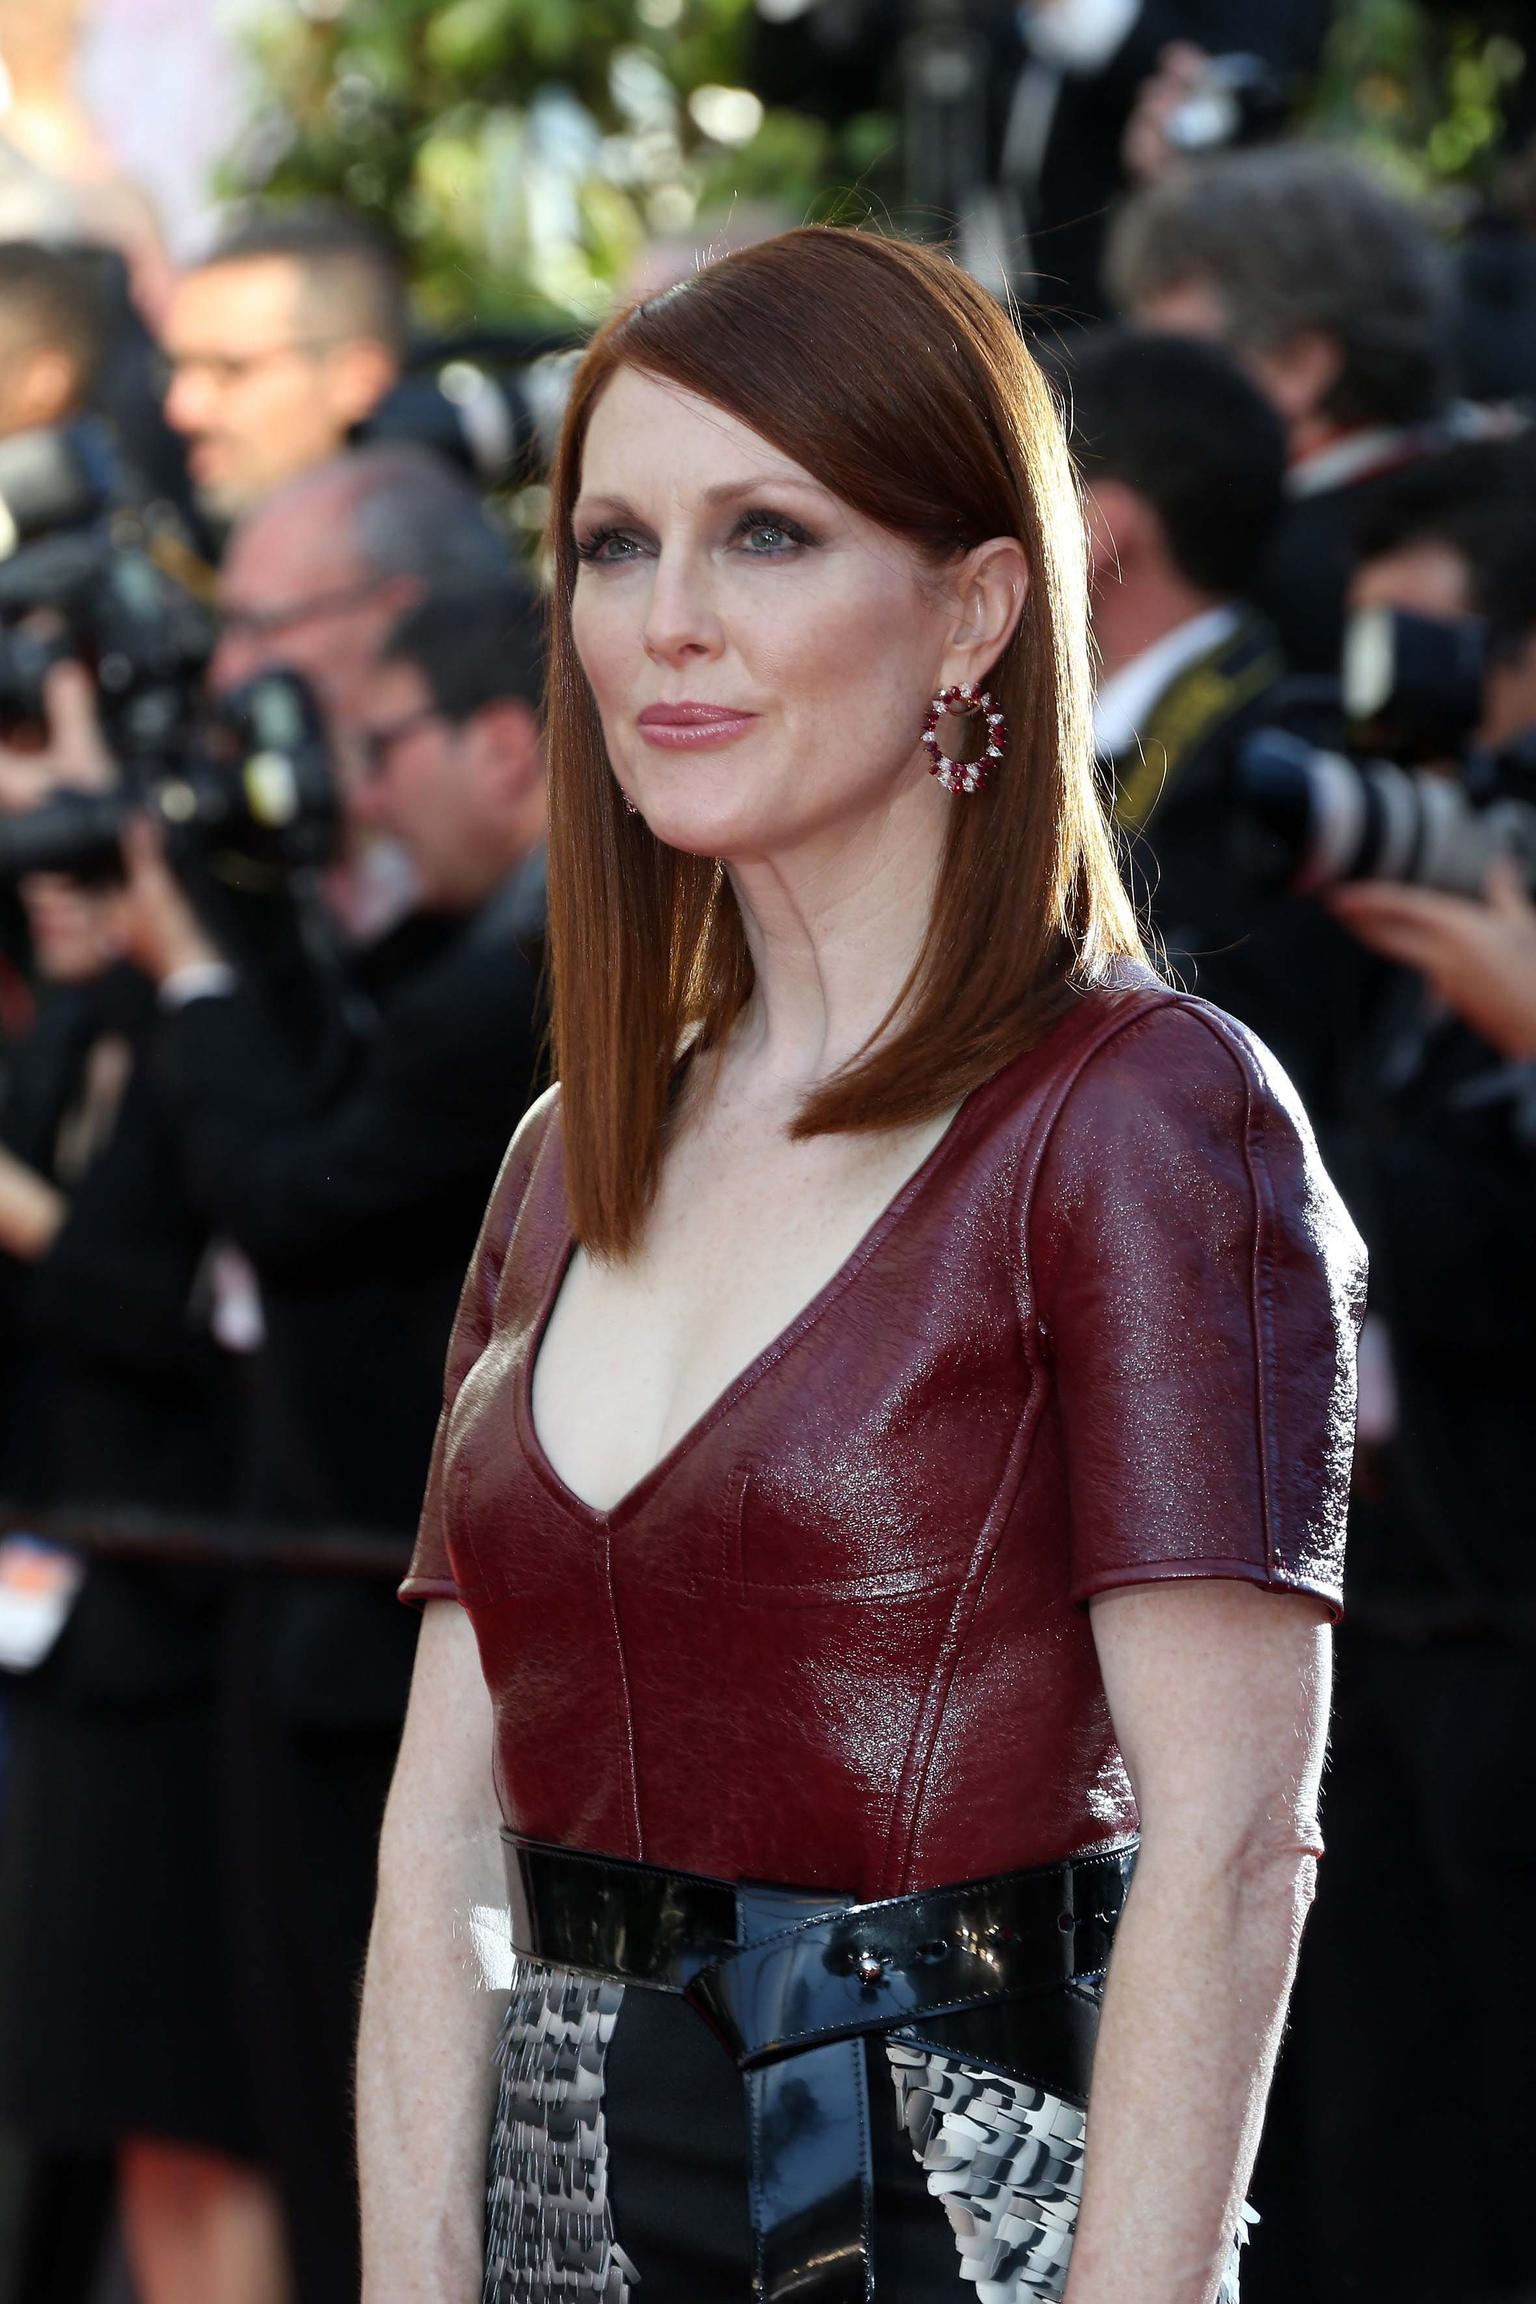 Known for her impeccable red carpet choices, Julianne Moore looked sensational in Louis Vuitton and Chopard jewels at the premiere of 'Mr Turner'